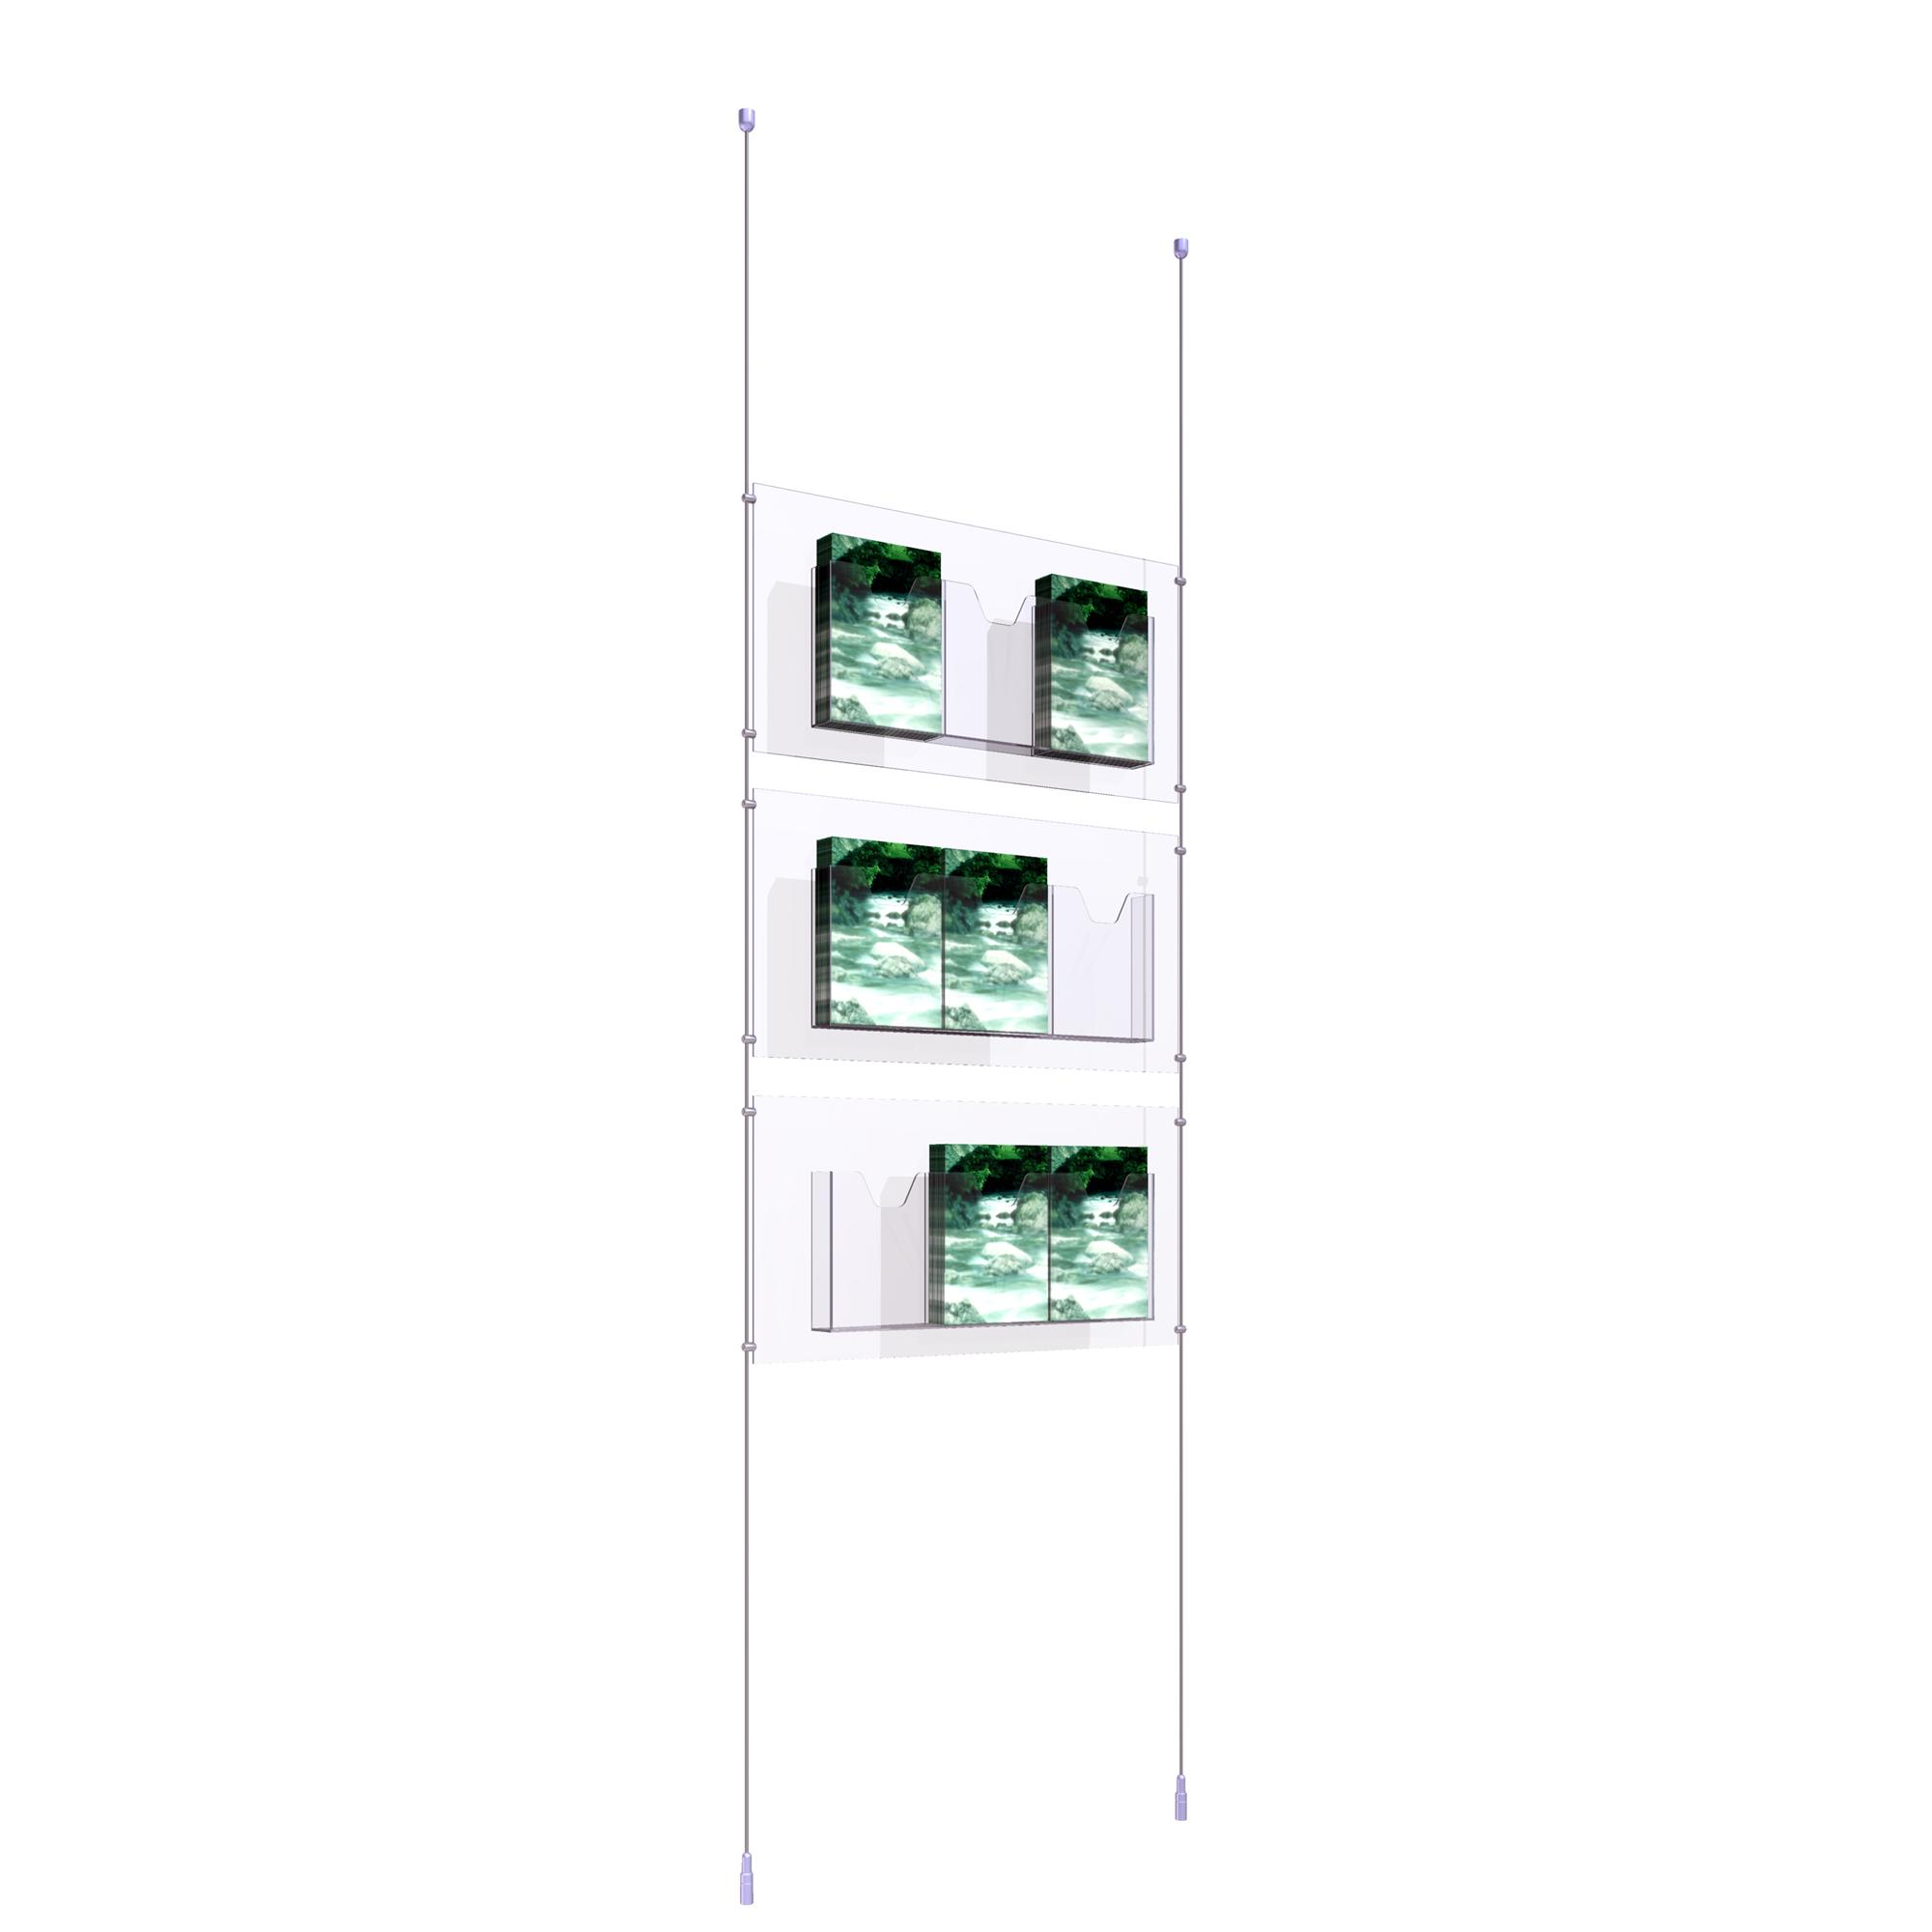 Ceiling to Floor Kit with 3 x Treble A5 Dispensers